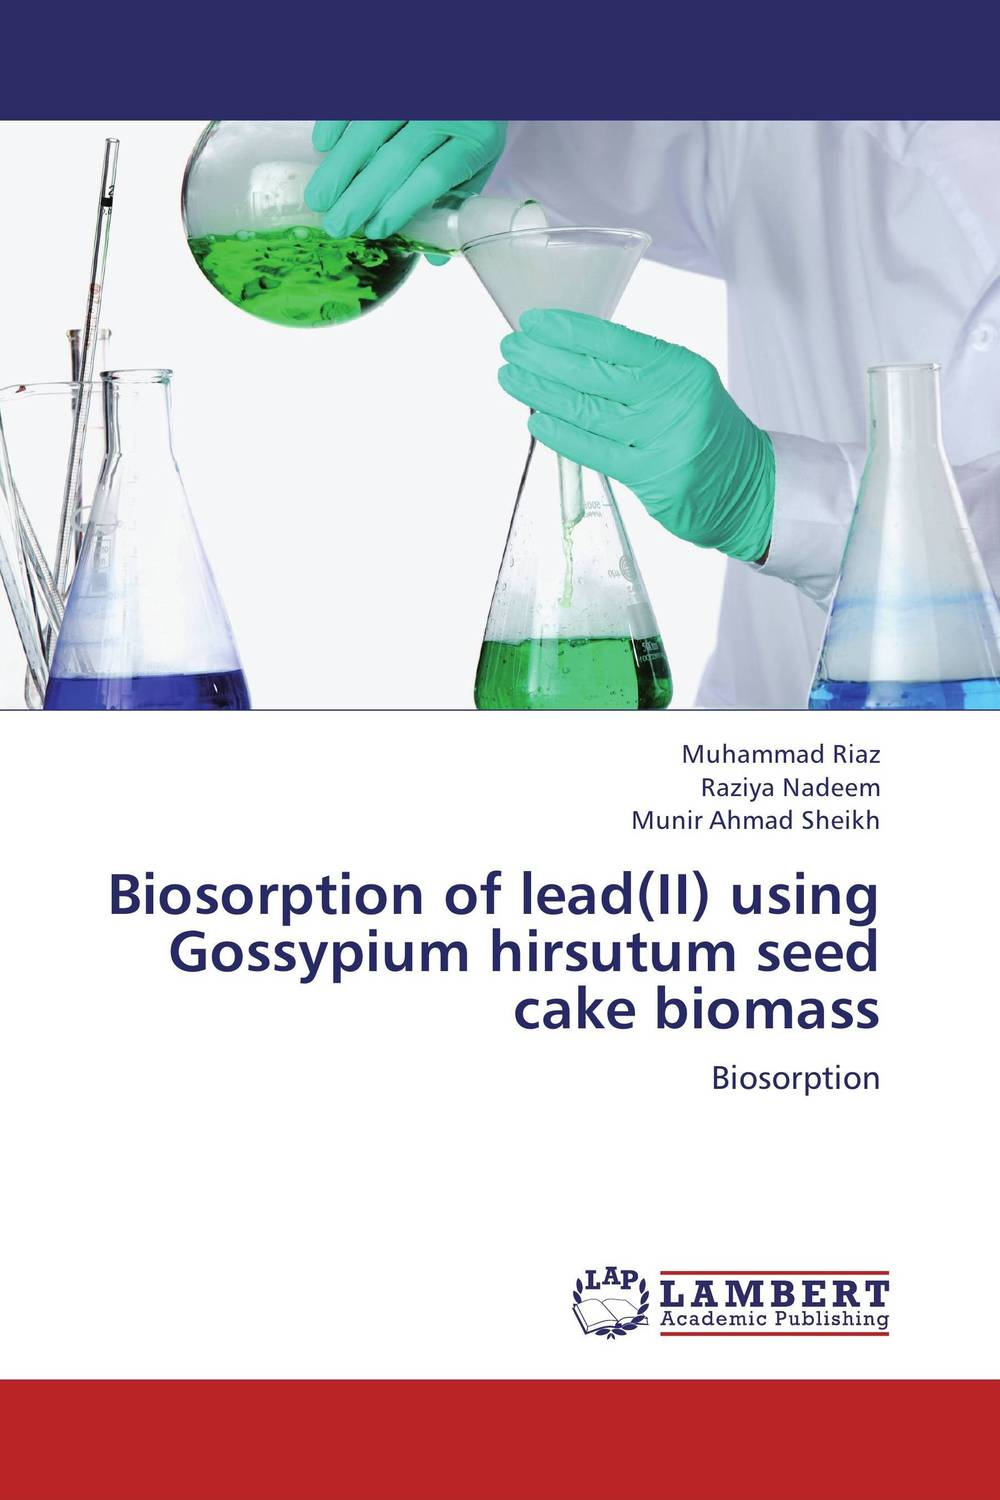 все цены на Biosorption of lead(II) using Gossypium hirsutum seed cake biomass в интернете